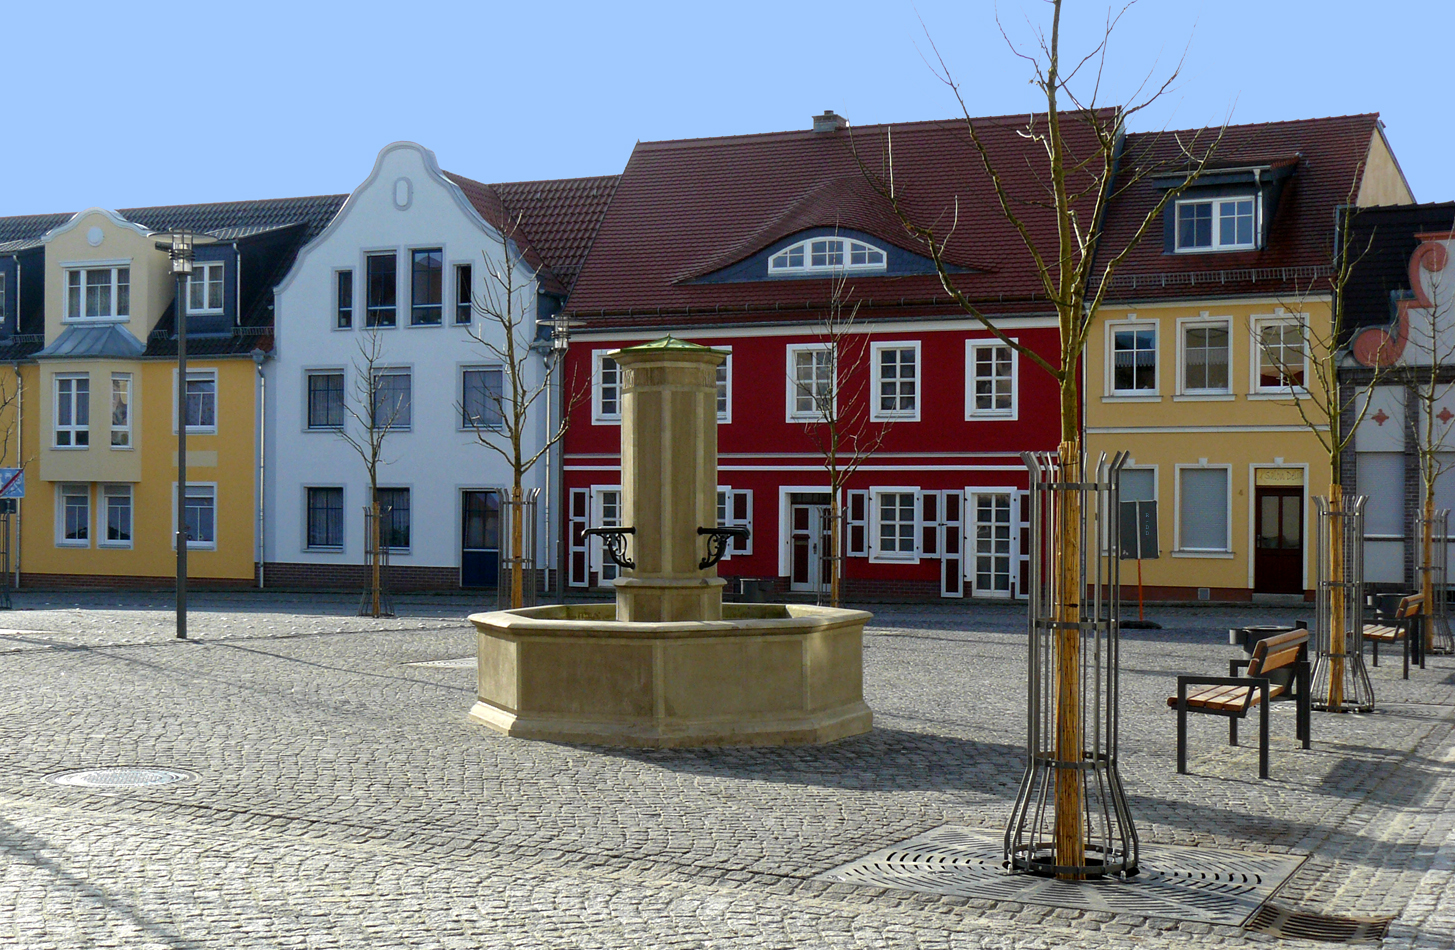 file spremberg kleiner markt mit saebisch brunnen wikimedia commons. Black Bedroom Furniture Sets. Home Design Ideas